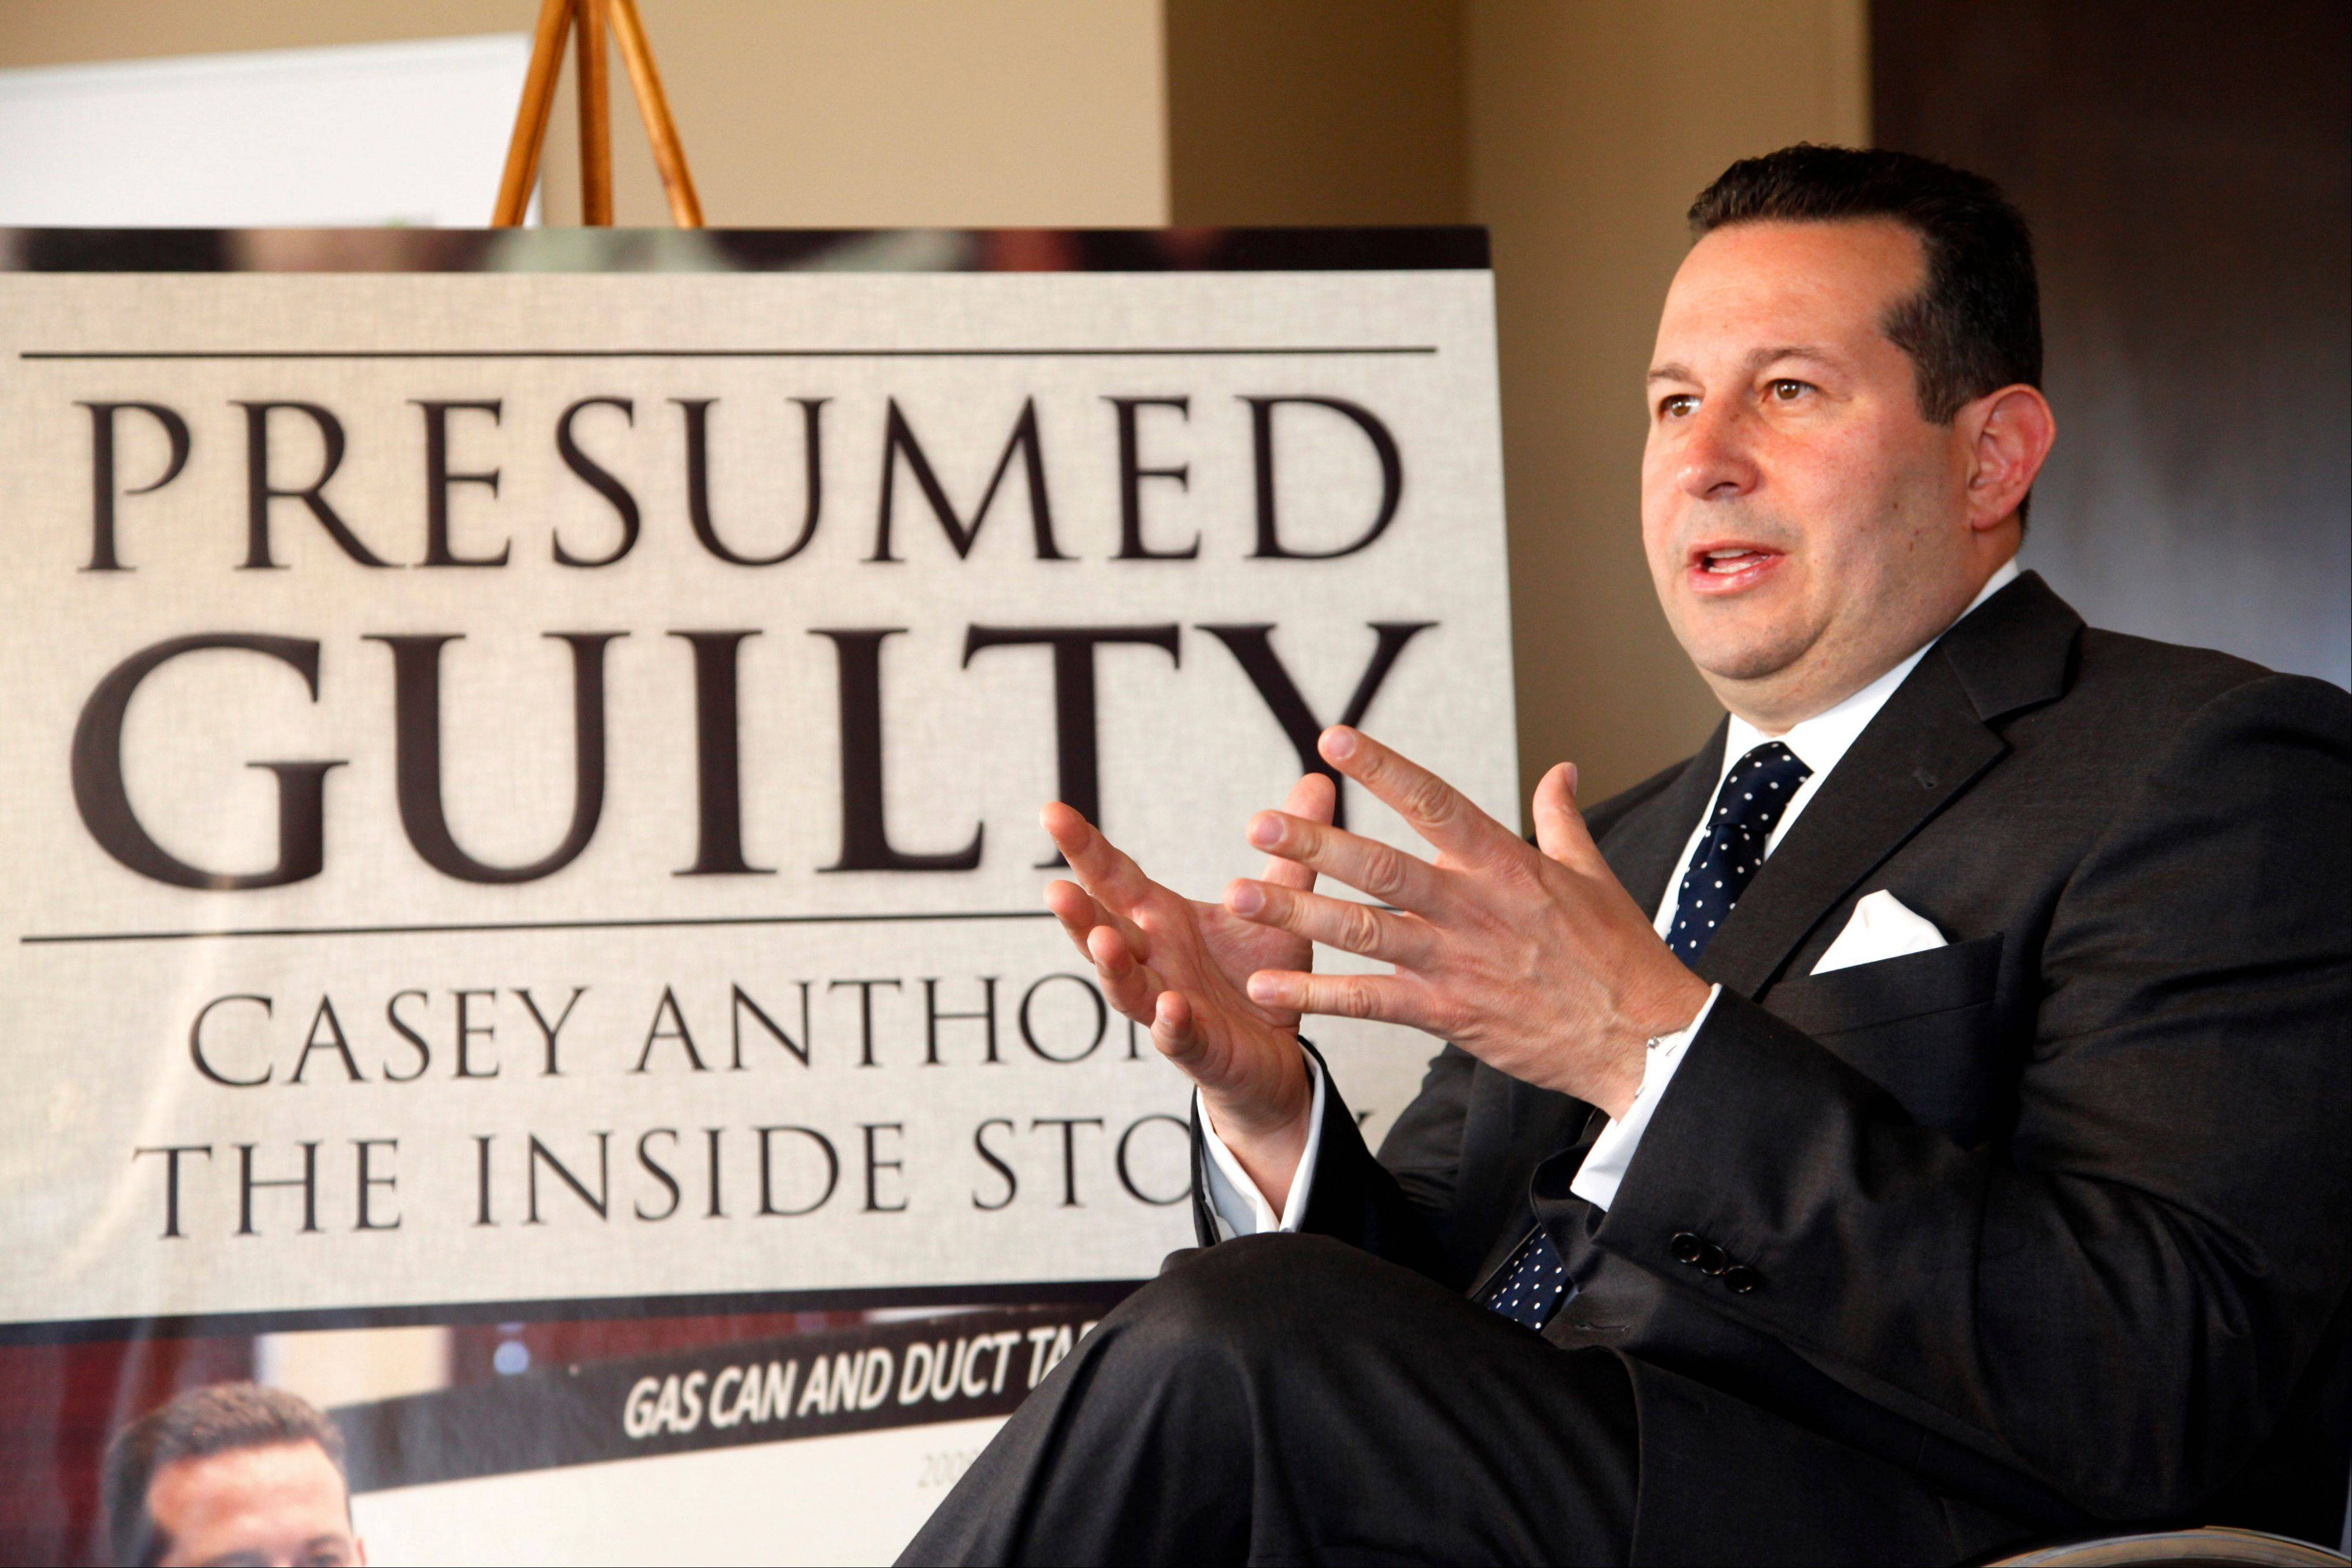 "Casey Anthony's defense attorney, Jose Baez, gestures as he speaks during an interview with The Associated Press in Coral Gables, Fla. In his just-published book ""Presumed Guilty, Casey Anthony: The Inside Story,"" Baez said prosecutors offered in 2008 to allow Anthony to plead guilty to aggravated manslaughter of a child and serve up to 13 years in prison. Baez said that in those early days he thought taking it might be in Anthony's best interest."